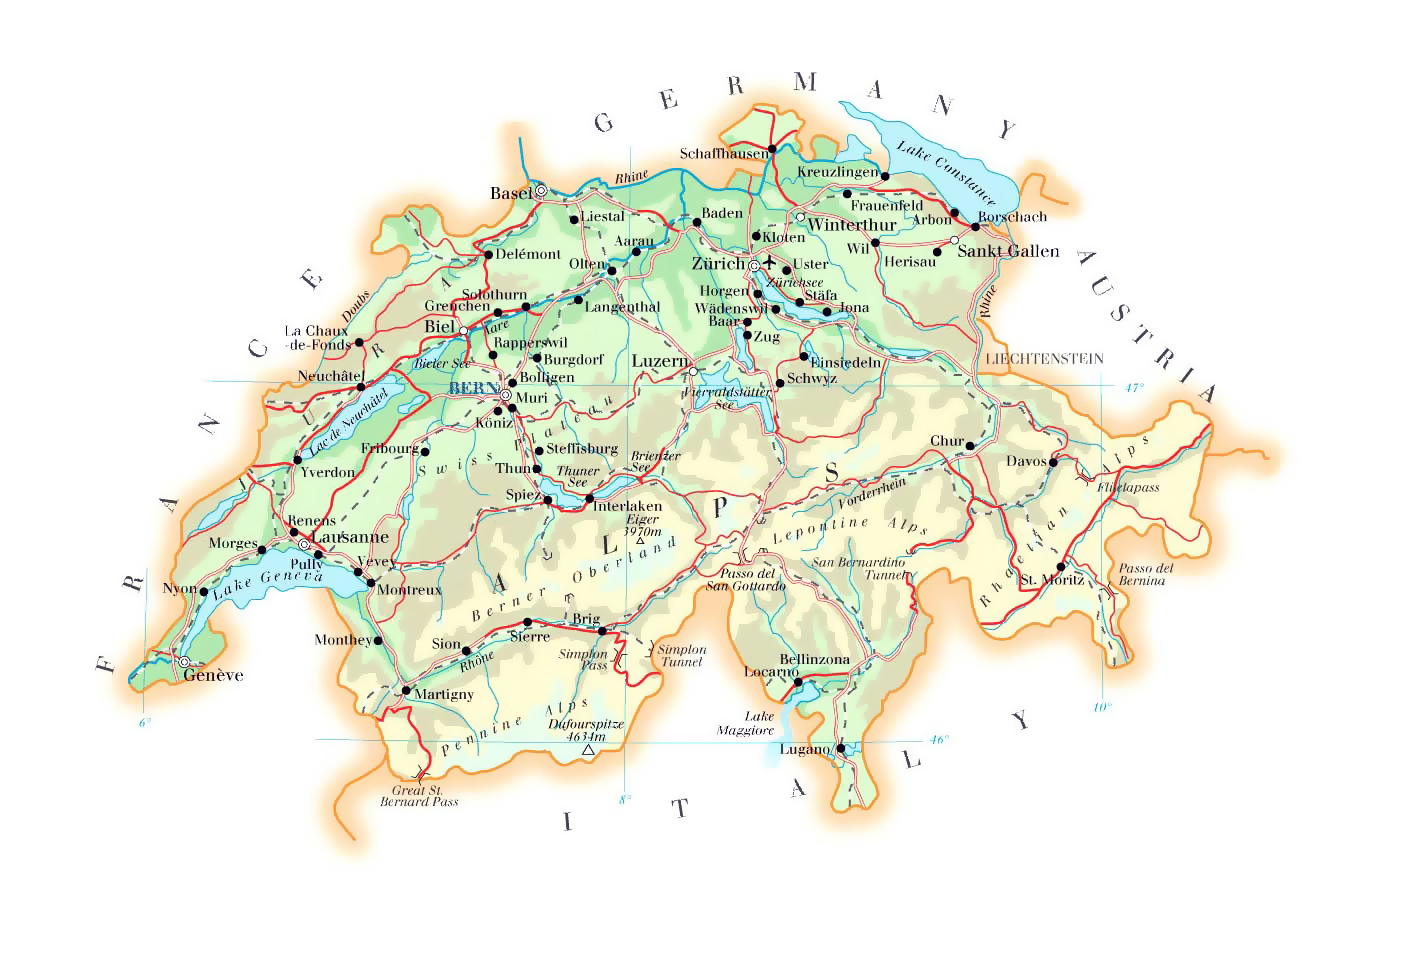 Switzerland Elevation Map.Detailed Elevation Map Of Switzerland With Roads Cities And